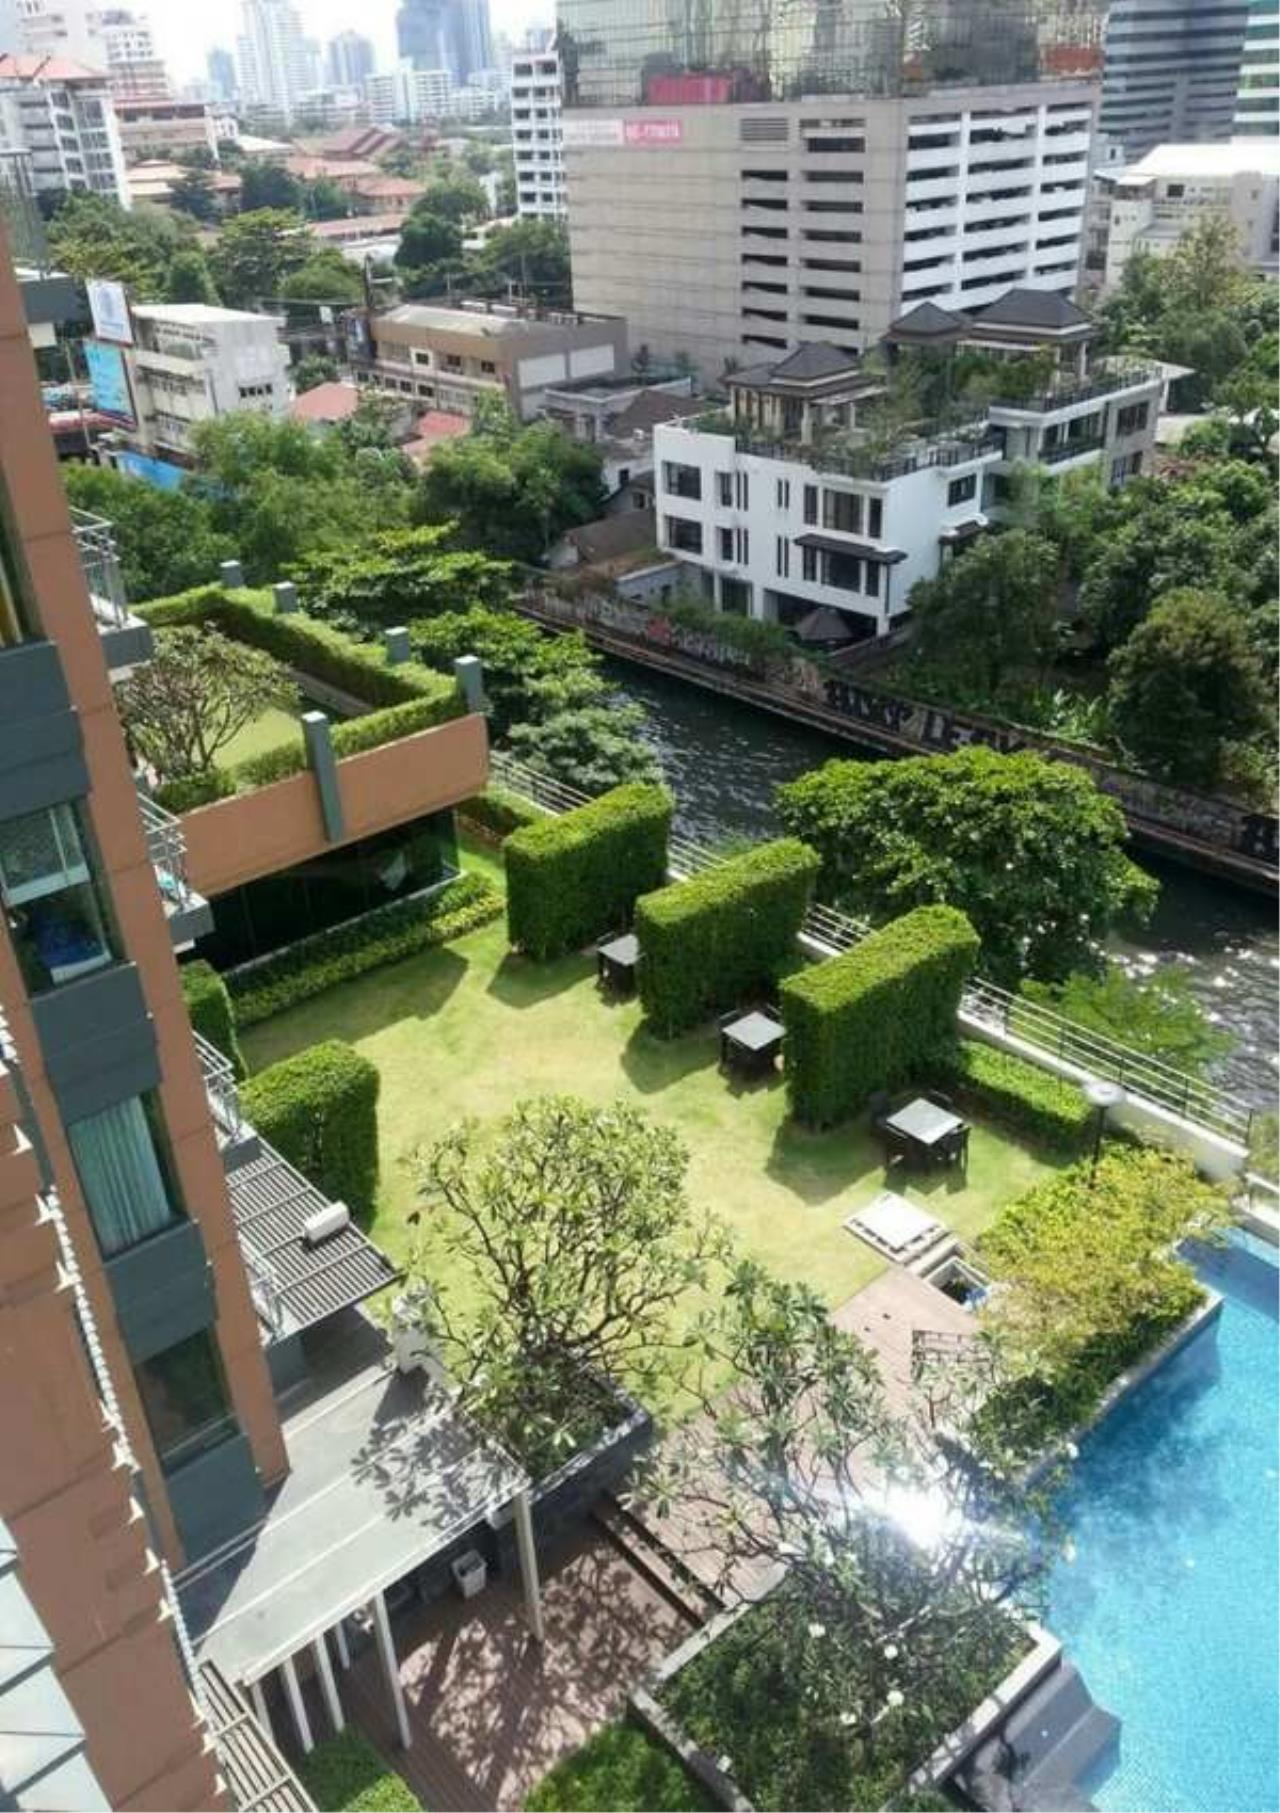 Bangkok Residential Agency's 1 Bed Duplex Condo For Rent in Phetchaburi BR6934CD 15